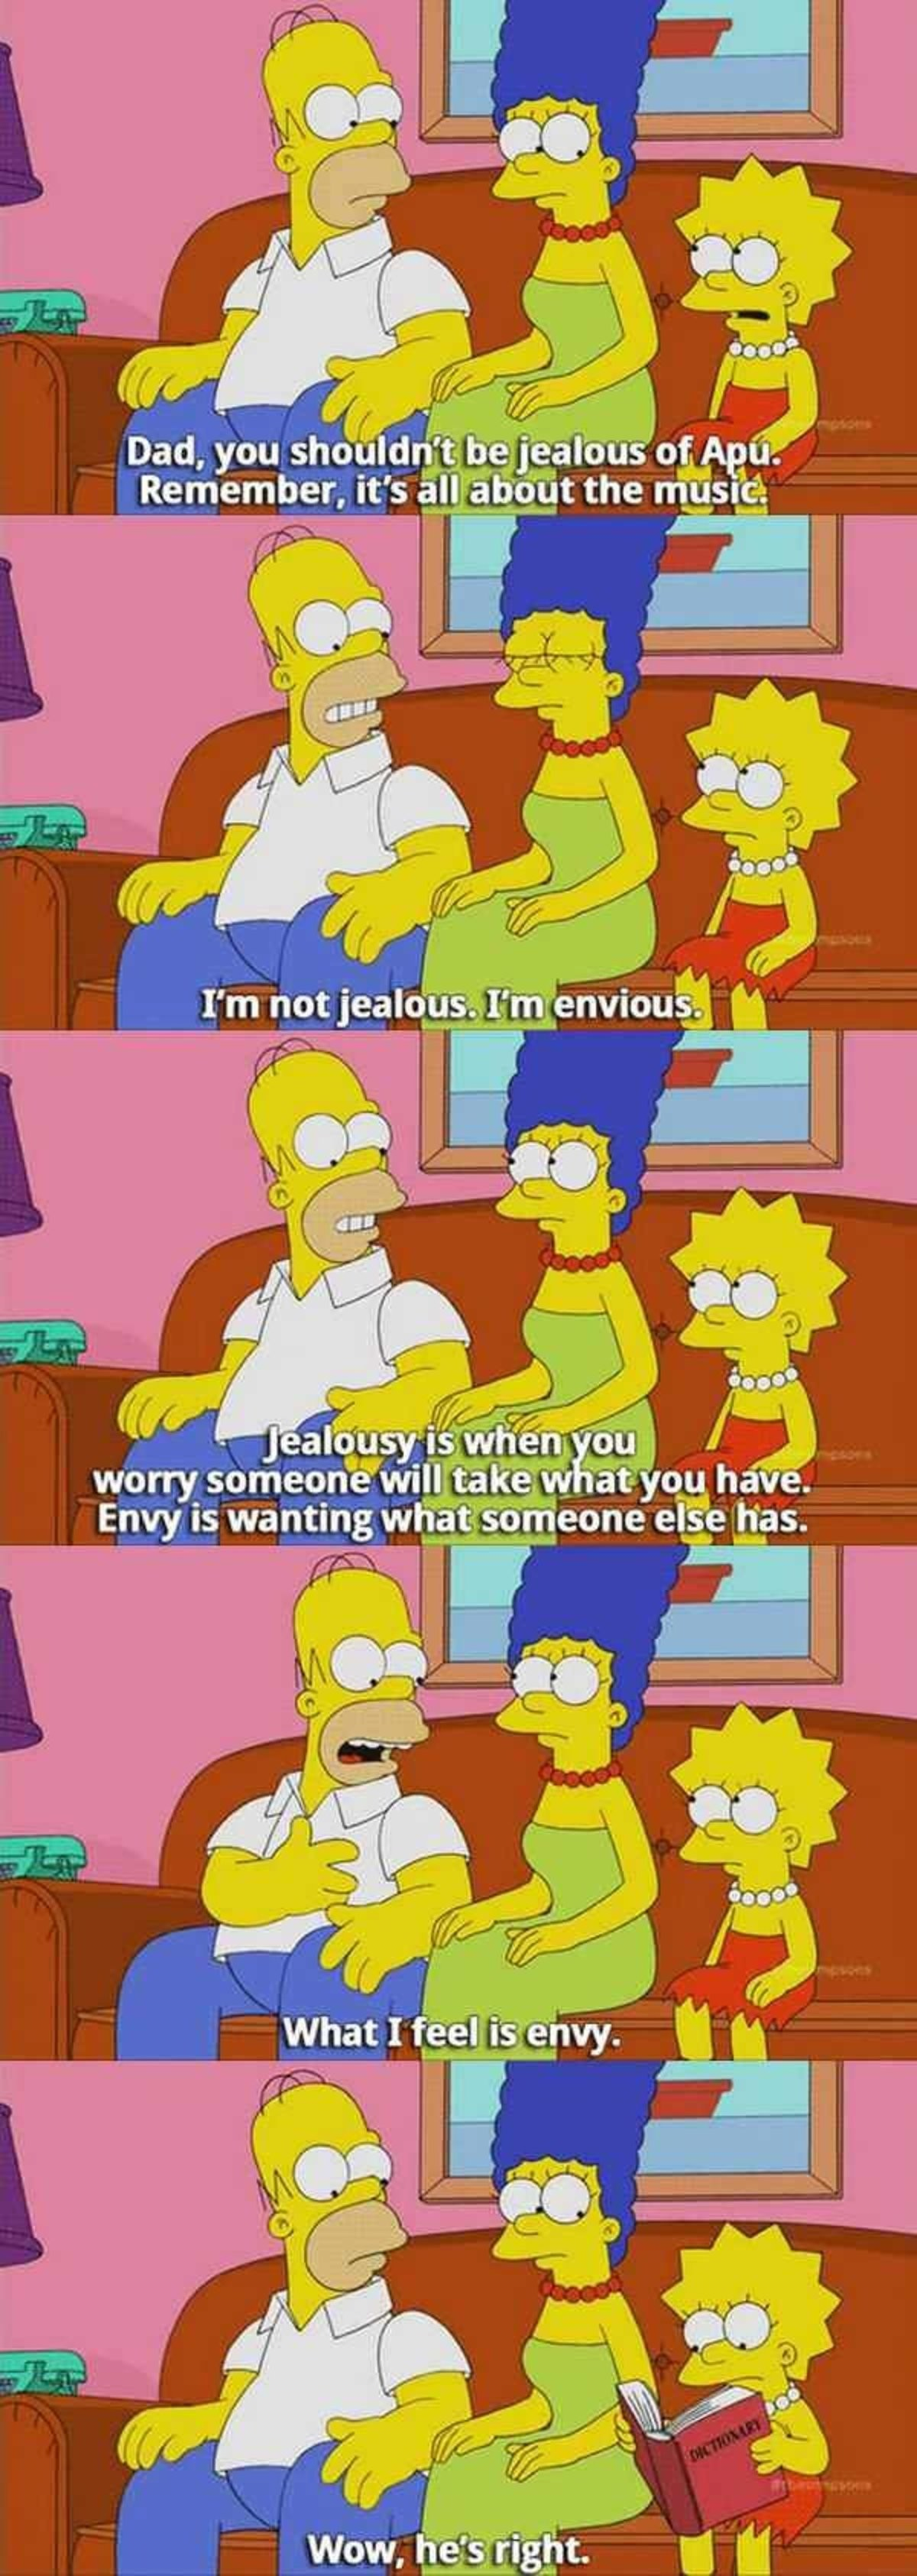 Homer. . worry , andyou h_ av . Envy is wanting what someone '§ e has.. This feel like it was a pet peeve of the writer so he found a way to force it into the episode just to tell off as many people as possible. I used to do it all